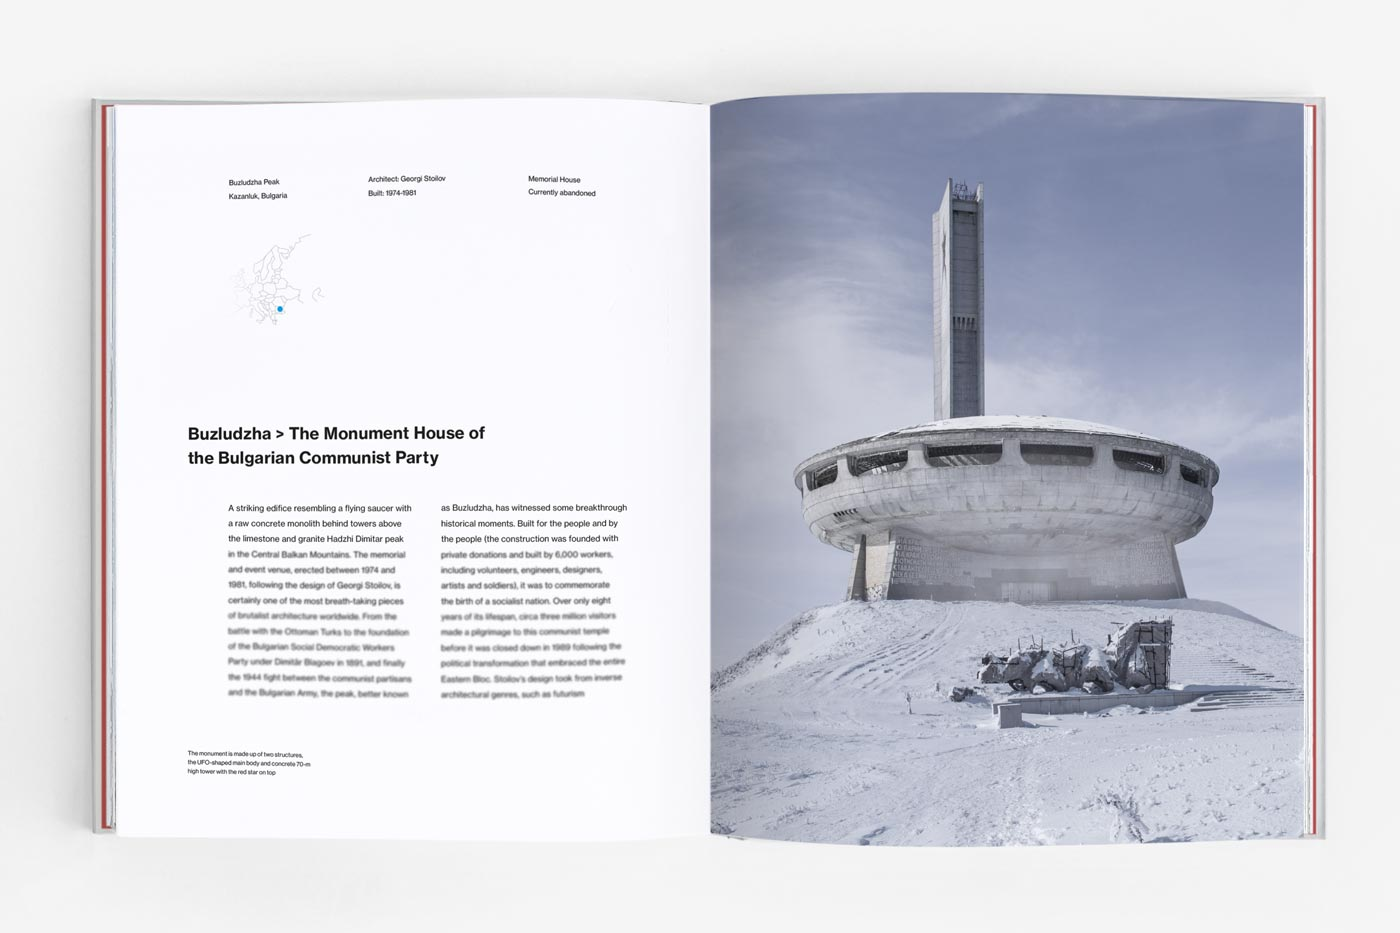 The Monument House of the Bulgarian Communist Party in Buzludzha, Bulgaria